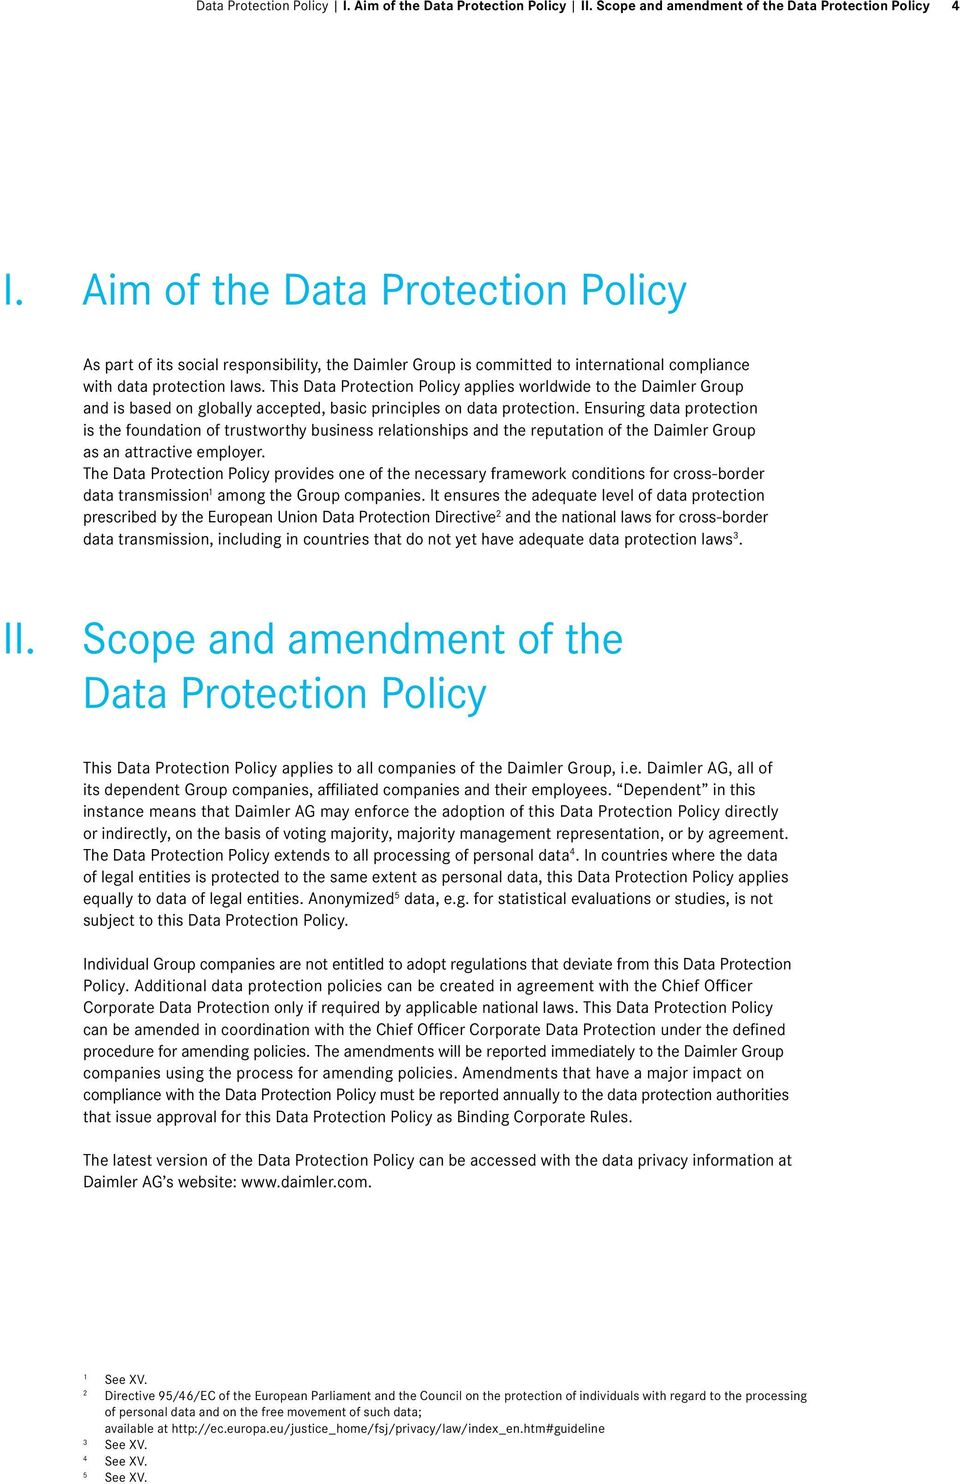 This Data Protection Policy applies worldwide to the Daimler Group and is based on globally accepted, basic principles on data protection.